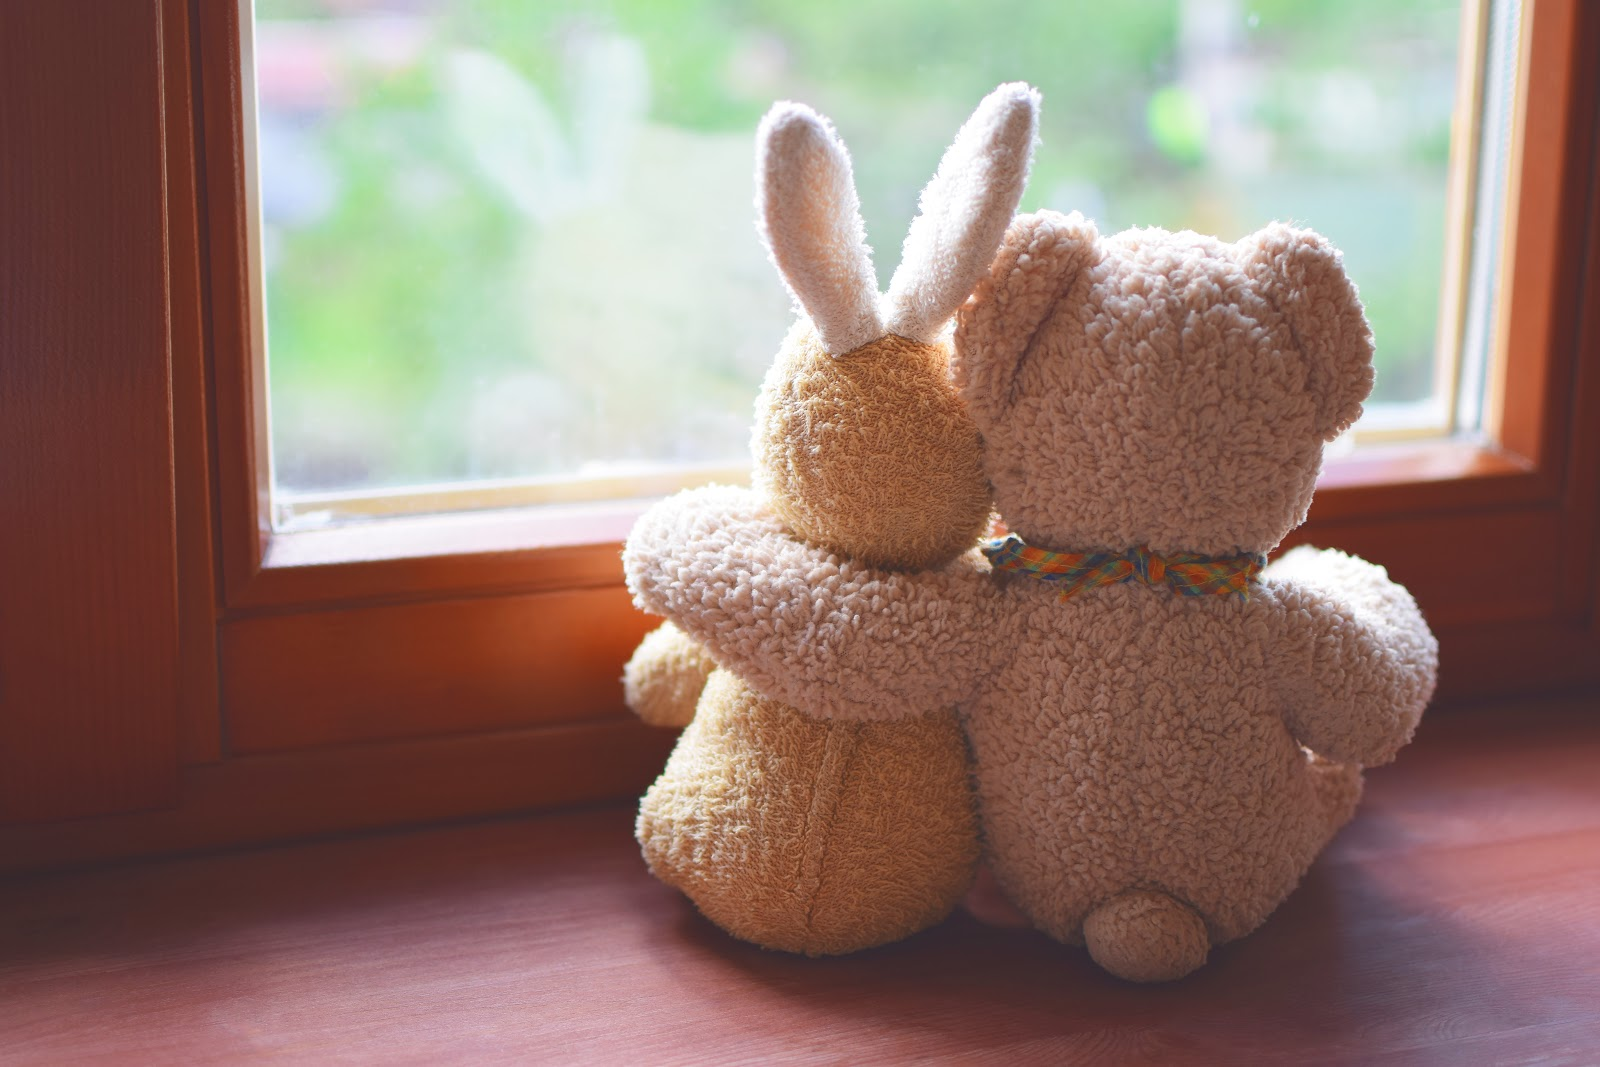 A stuffed bunny and bear with their arms around each other